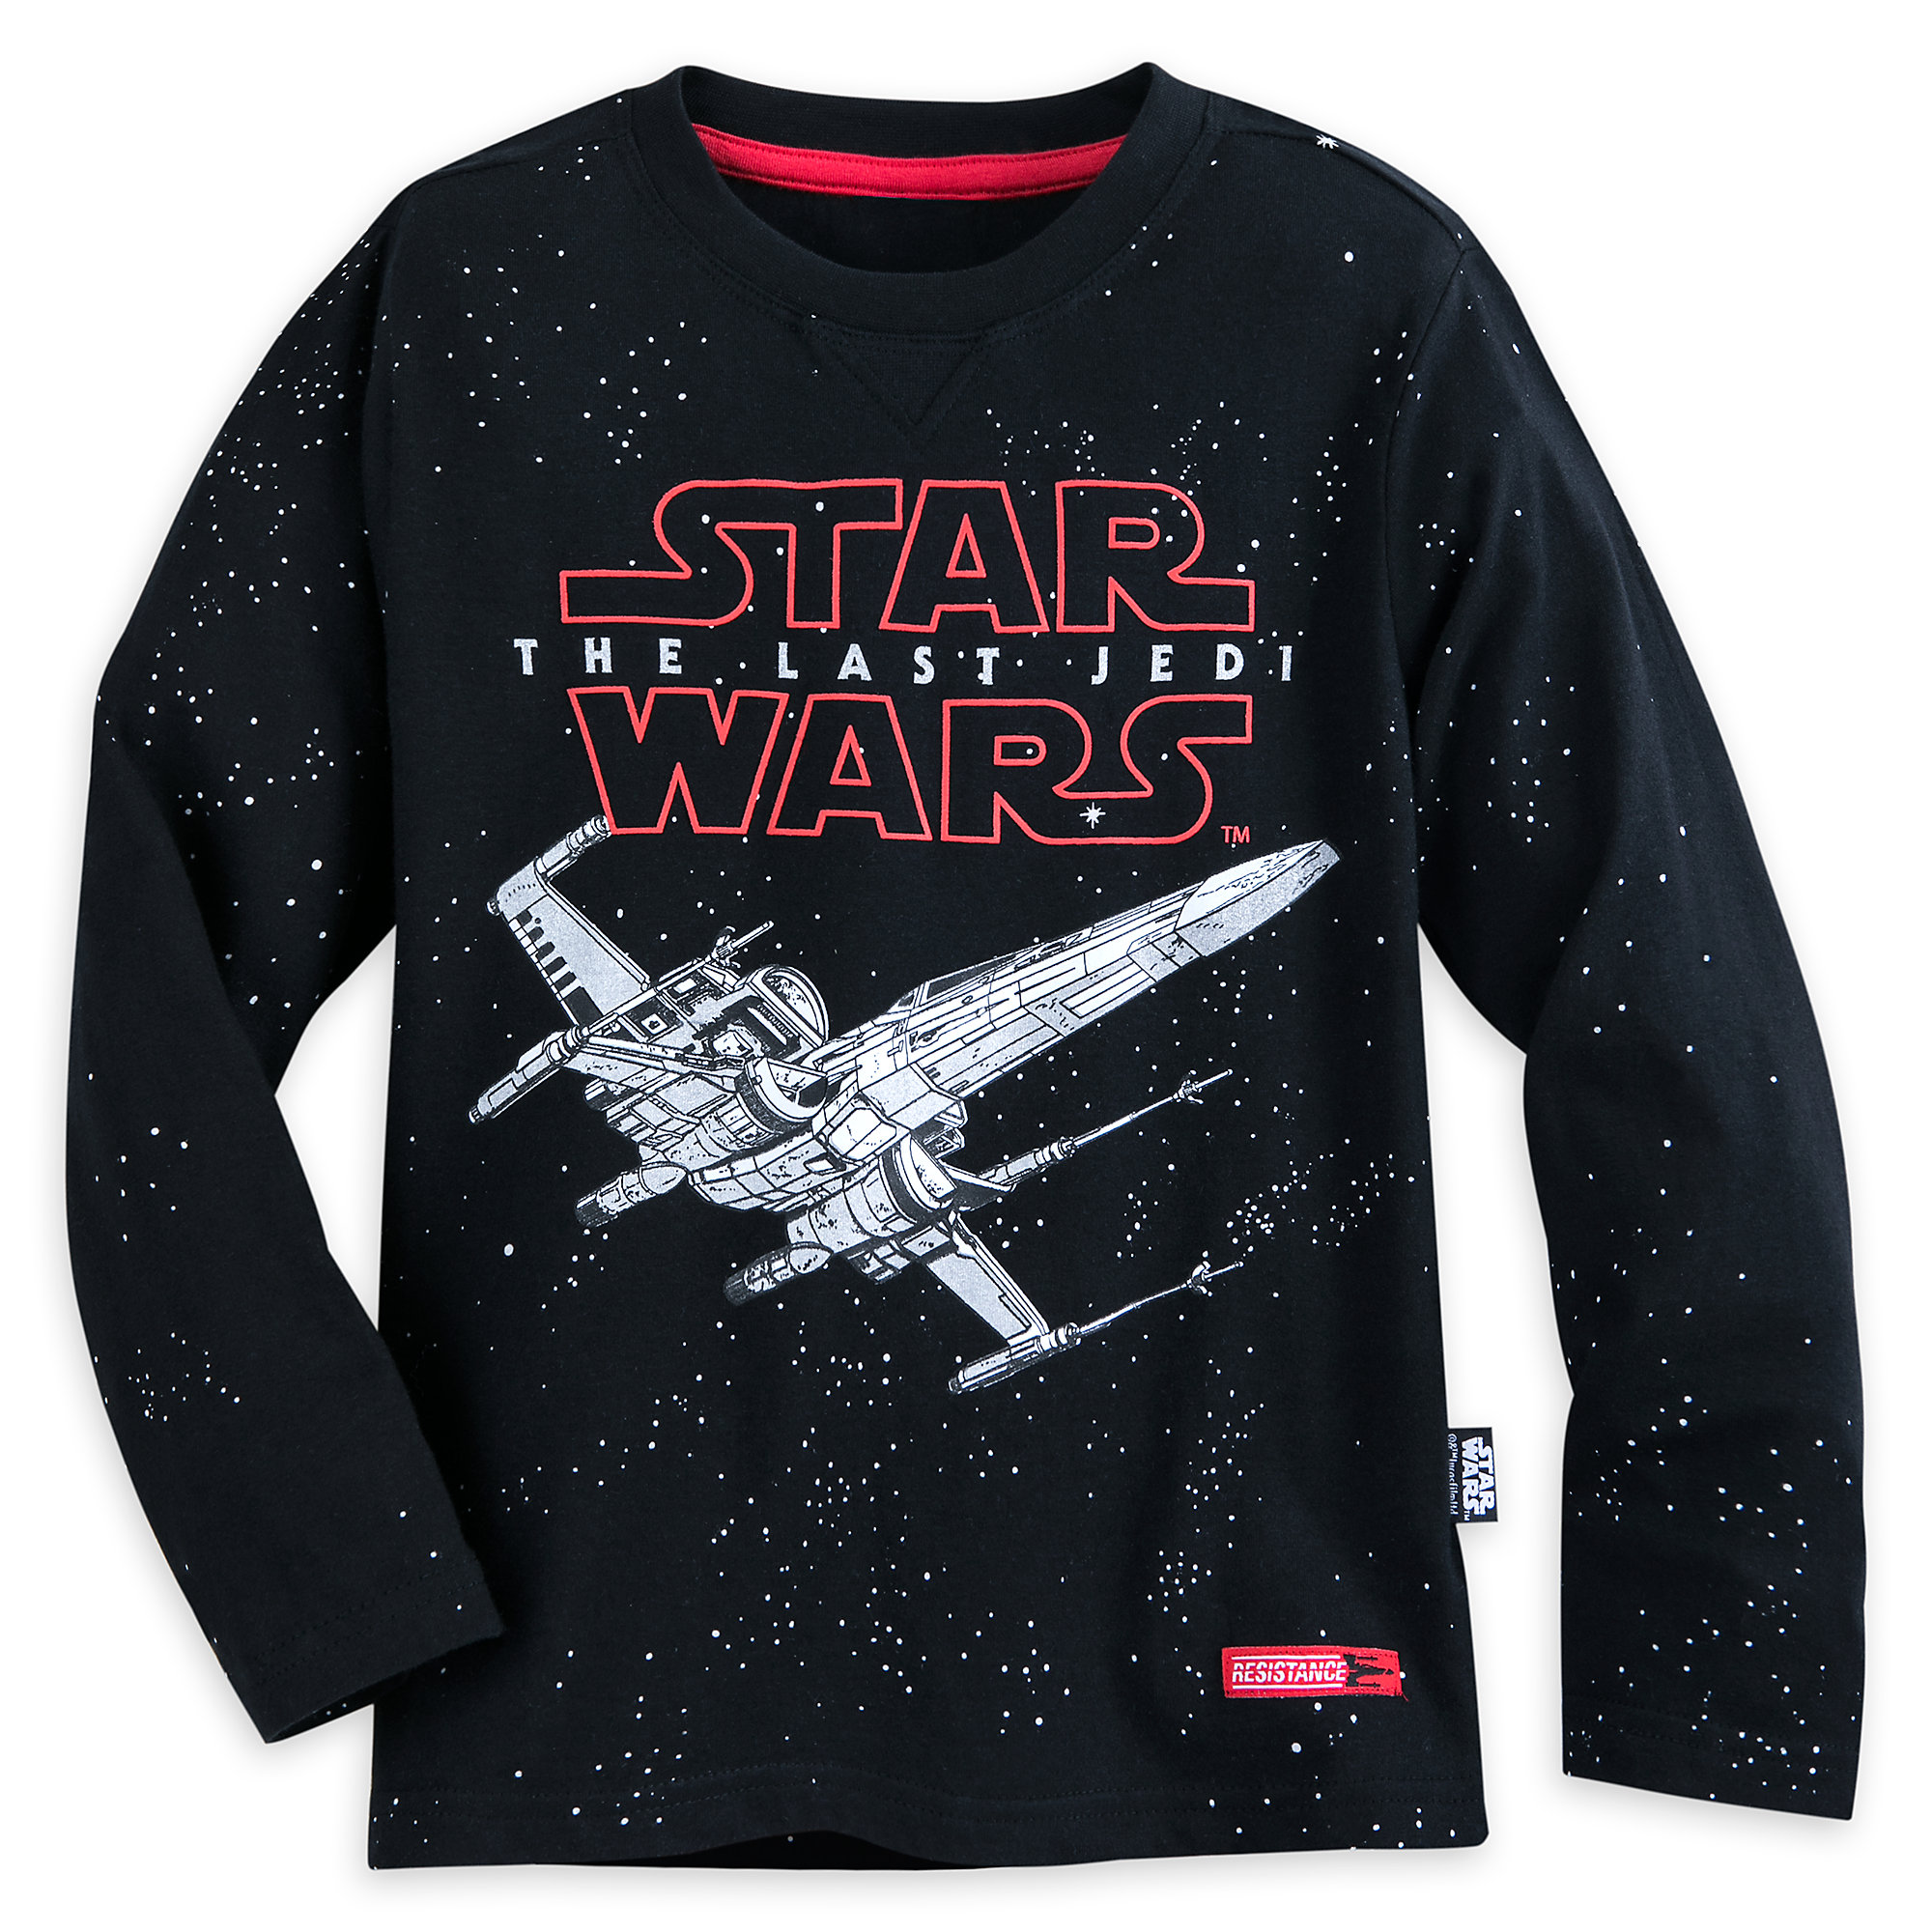 Star Wars: The Last Jedi X-Wing T-Shirt for Boys